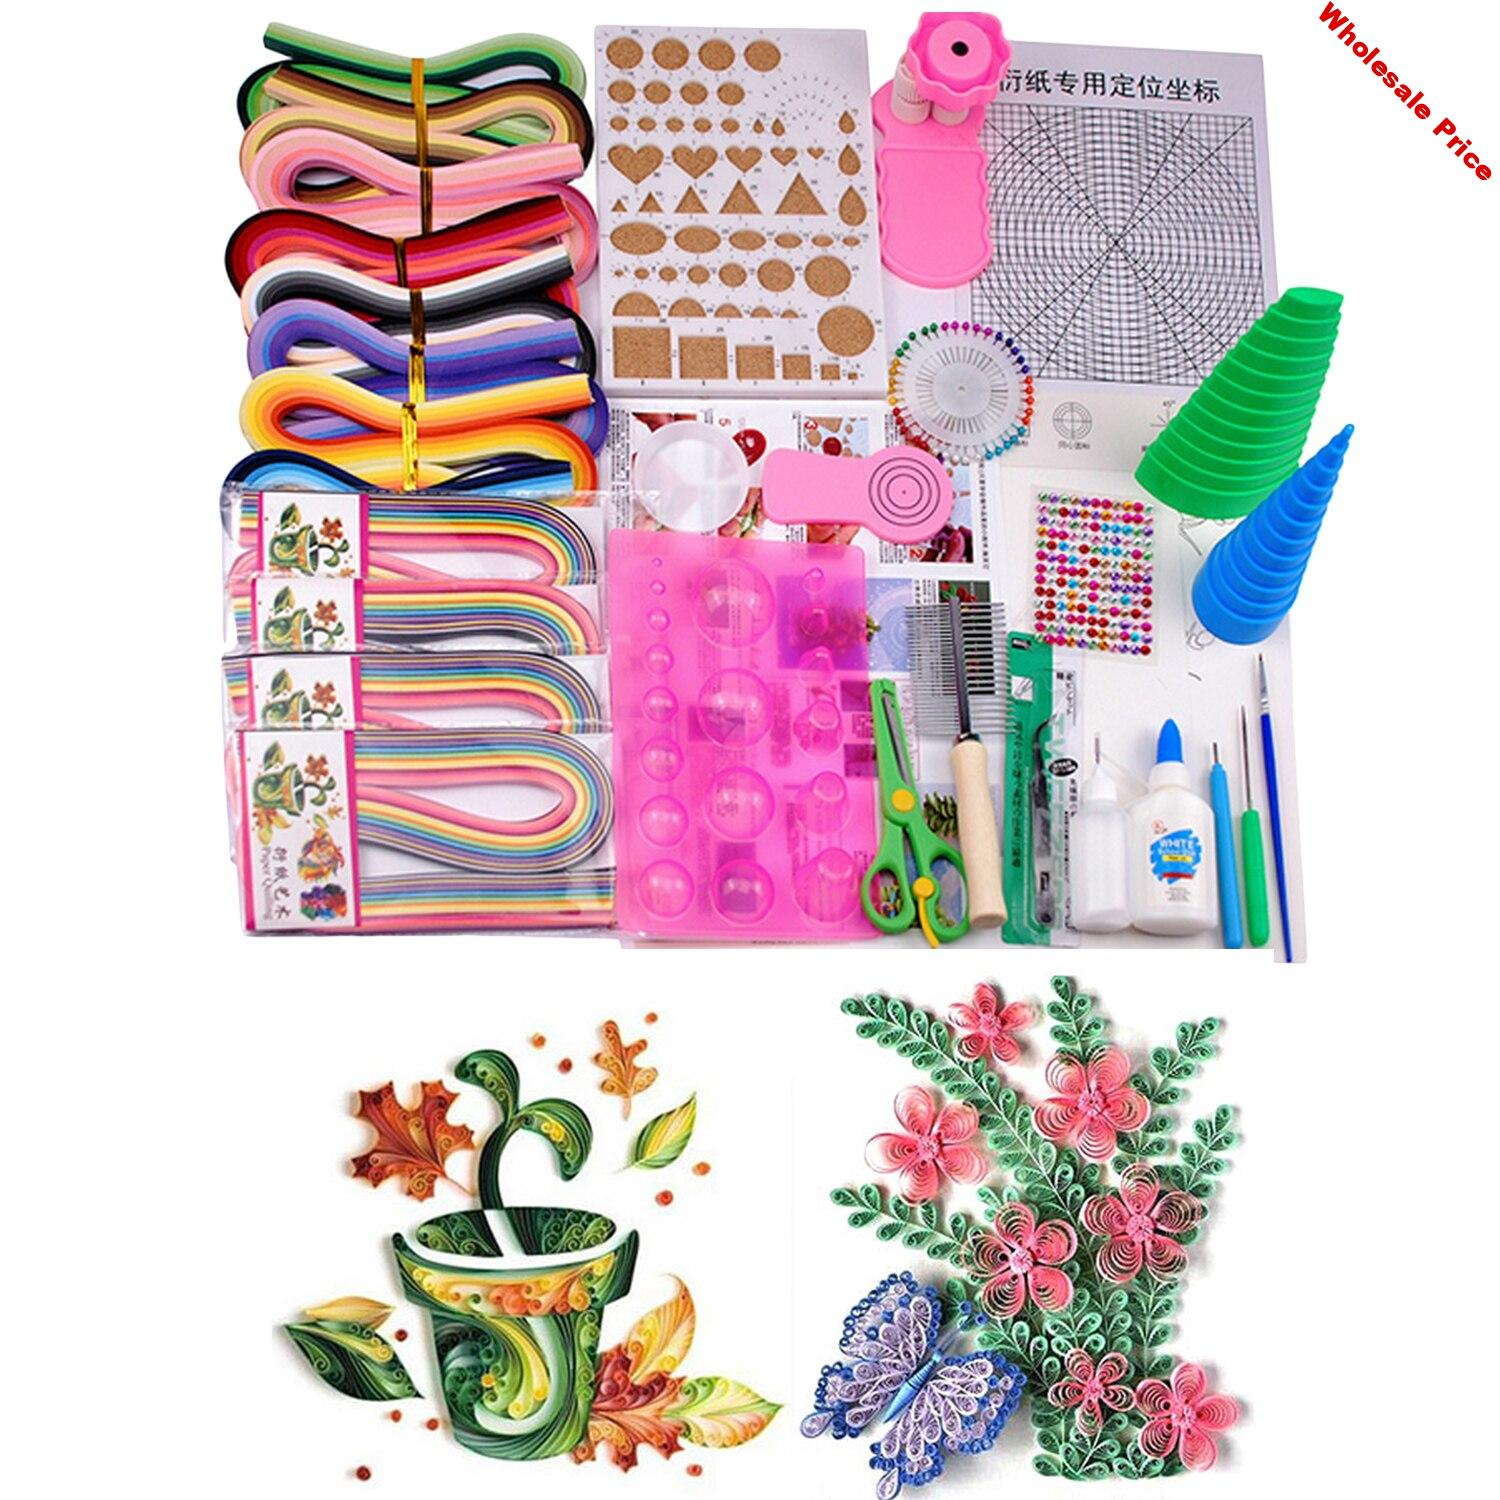 Complete Quilling Paper Material 1520 Strips Paper with 21 Kinds Necessary Tools Kit for Beginners Kids Adults Random Style